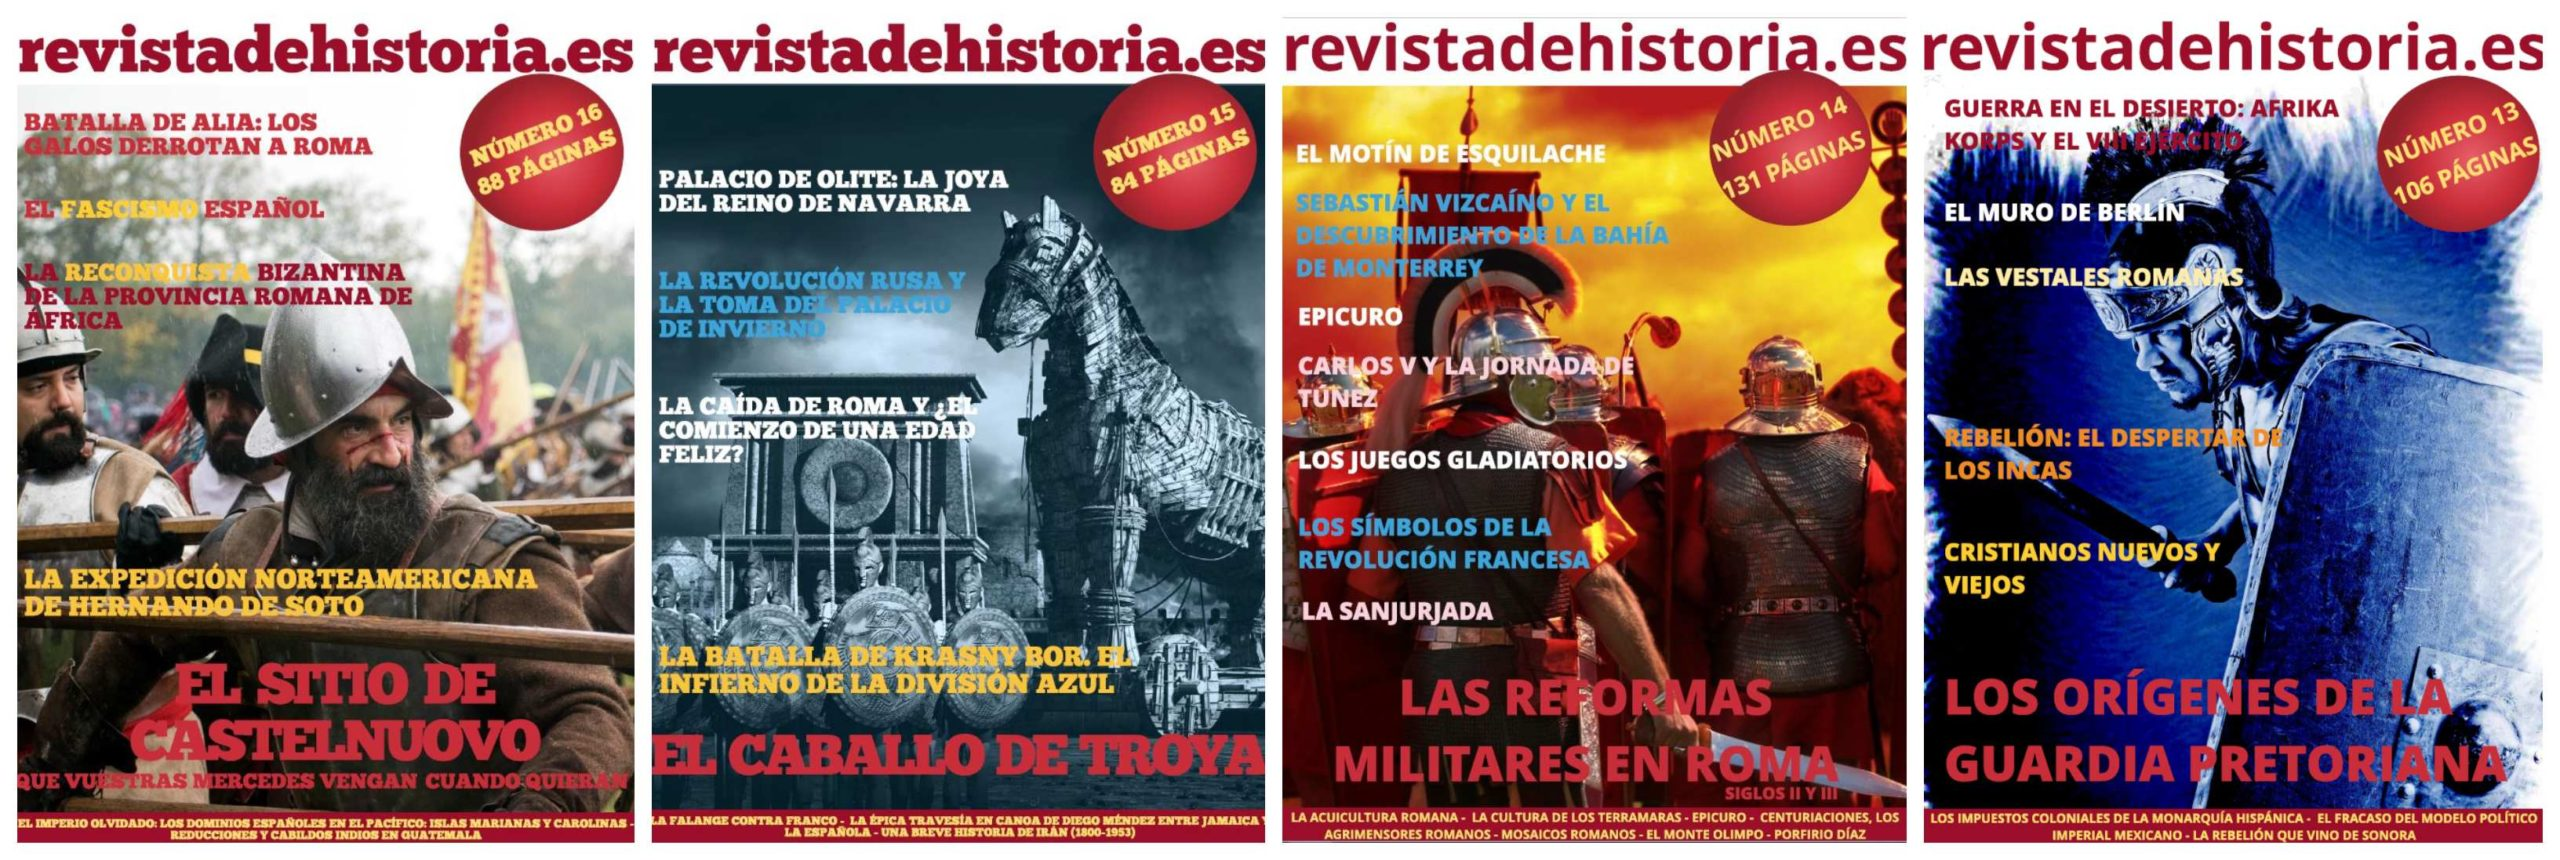 Revista de Historia digital